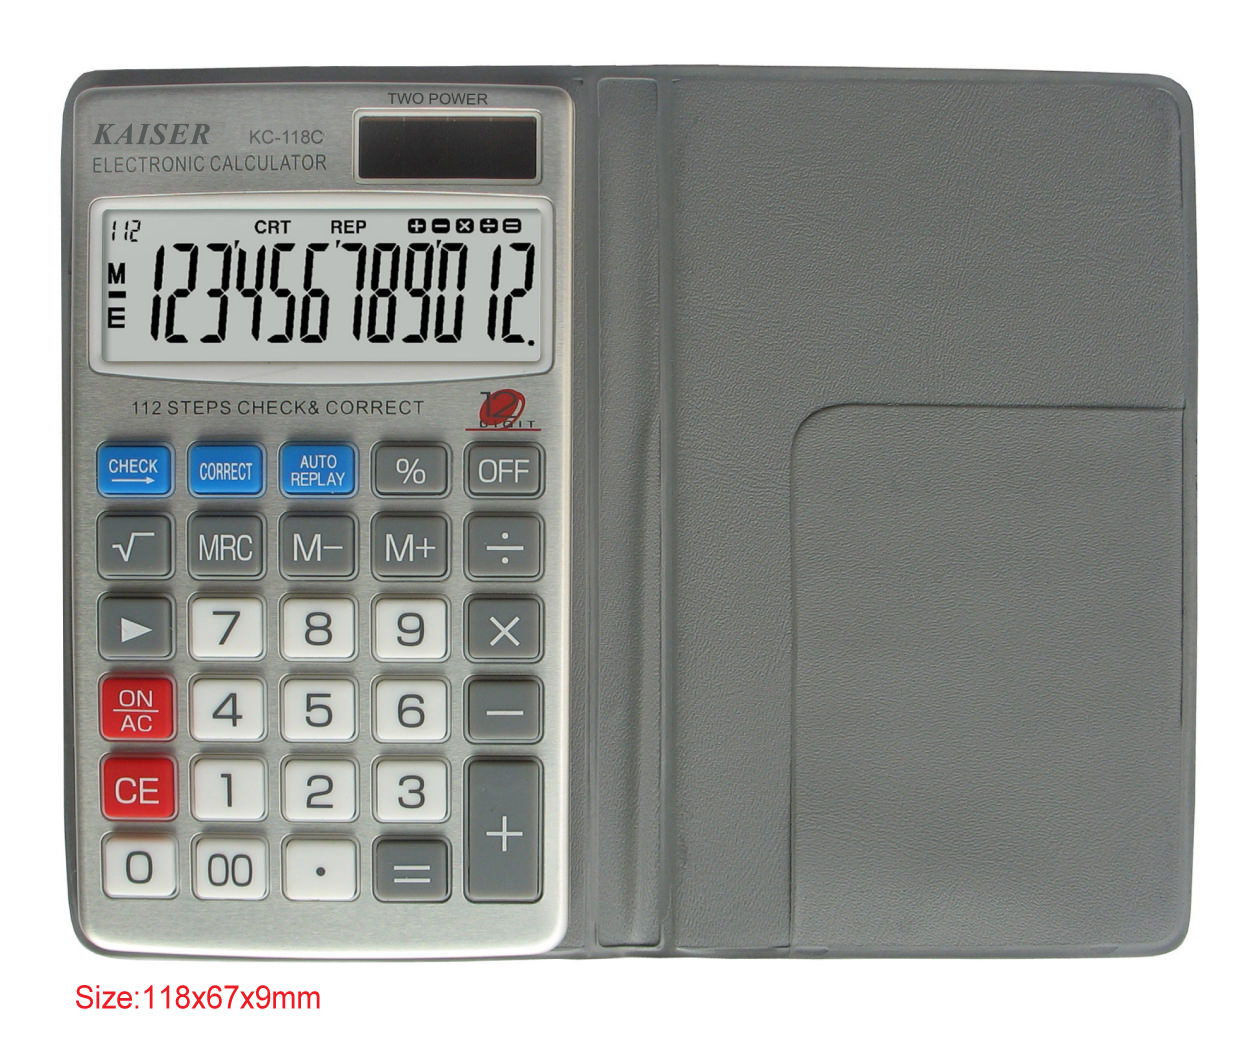 12 digit handy calculator with check&correct